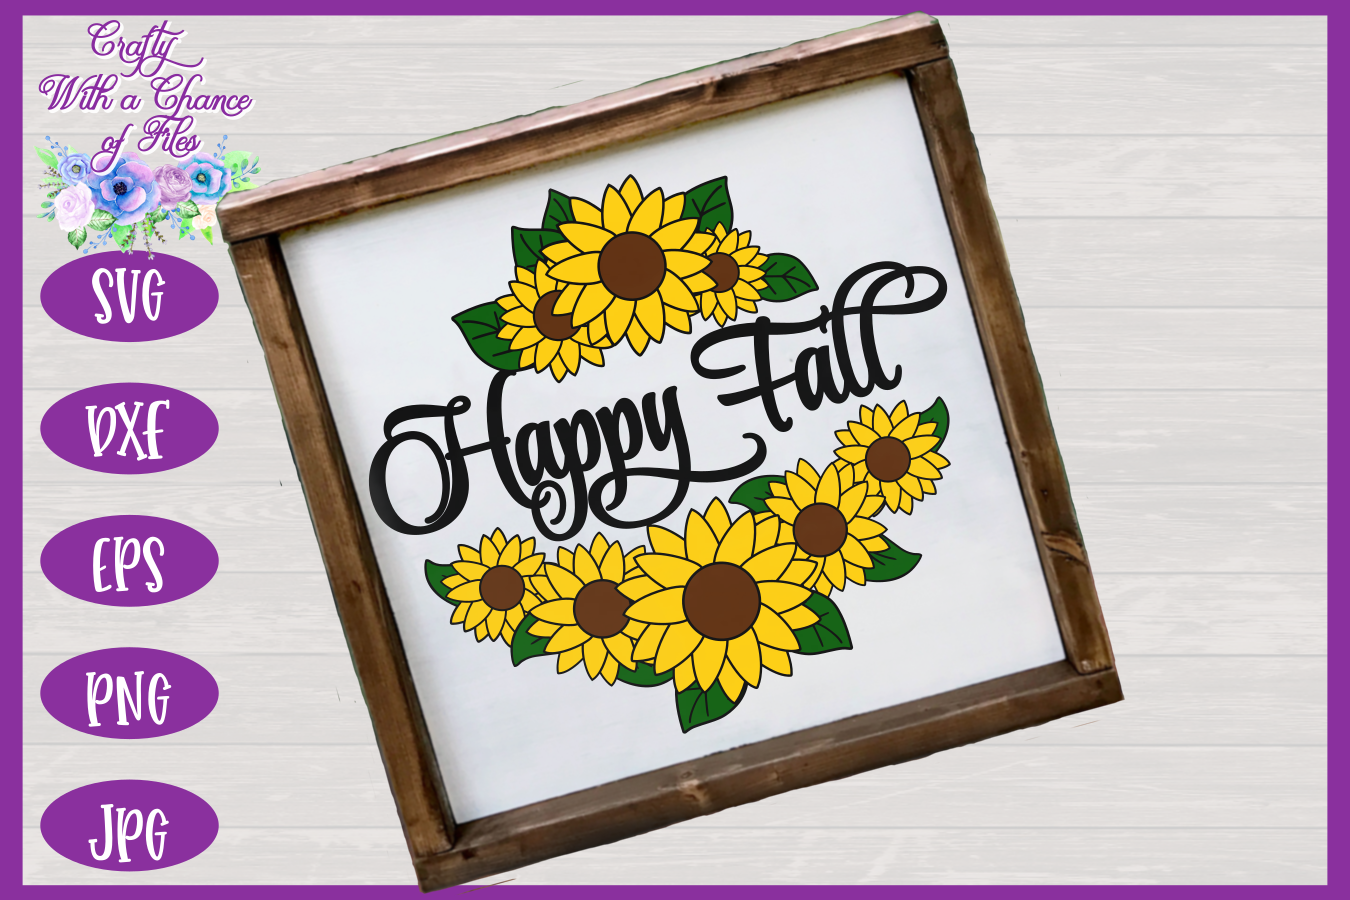 Happy Fall SVG | Autumn SVG | Sunflowers SVG | Fall SVG example image 2